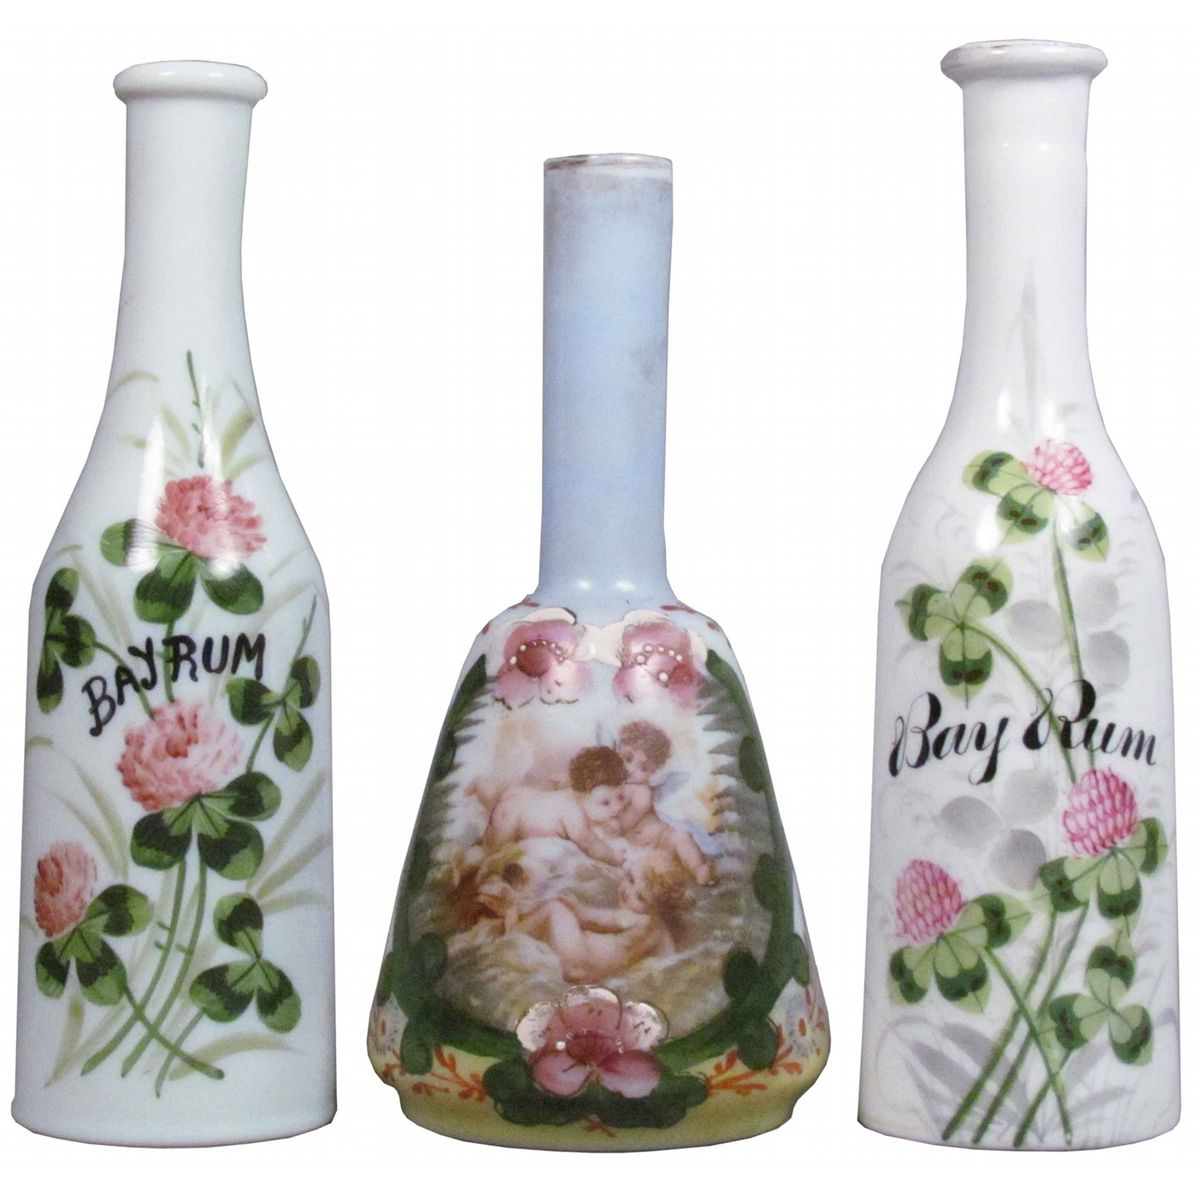 Three hand painted milk glass barber bottles for Hand painted glass bottles